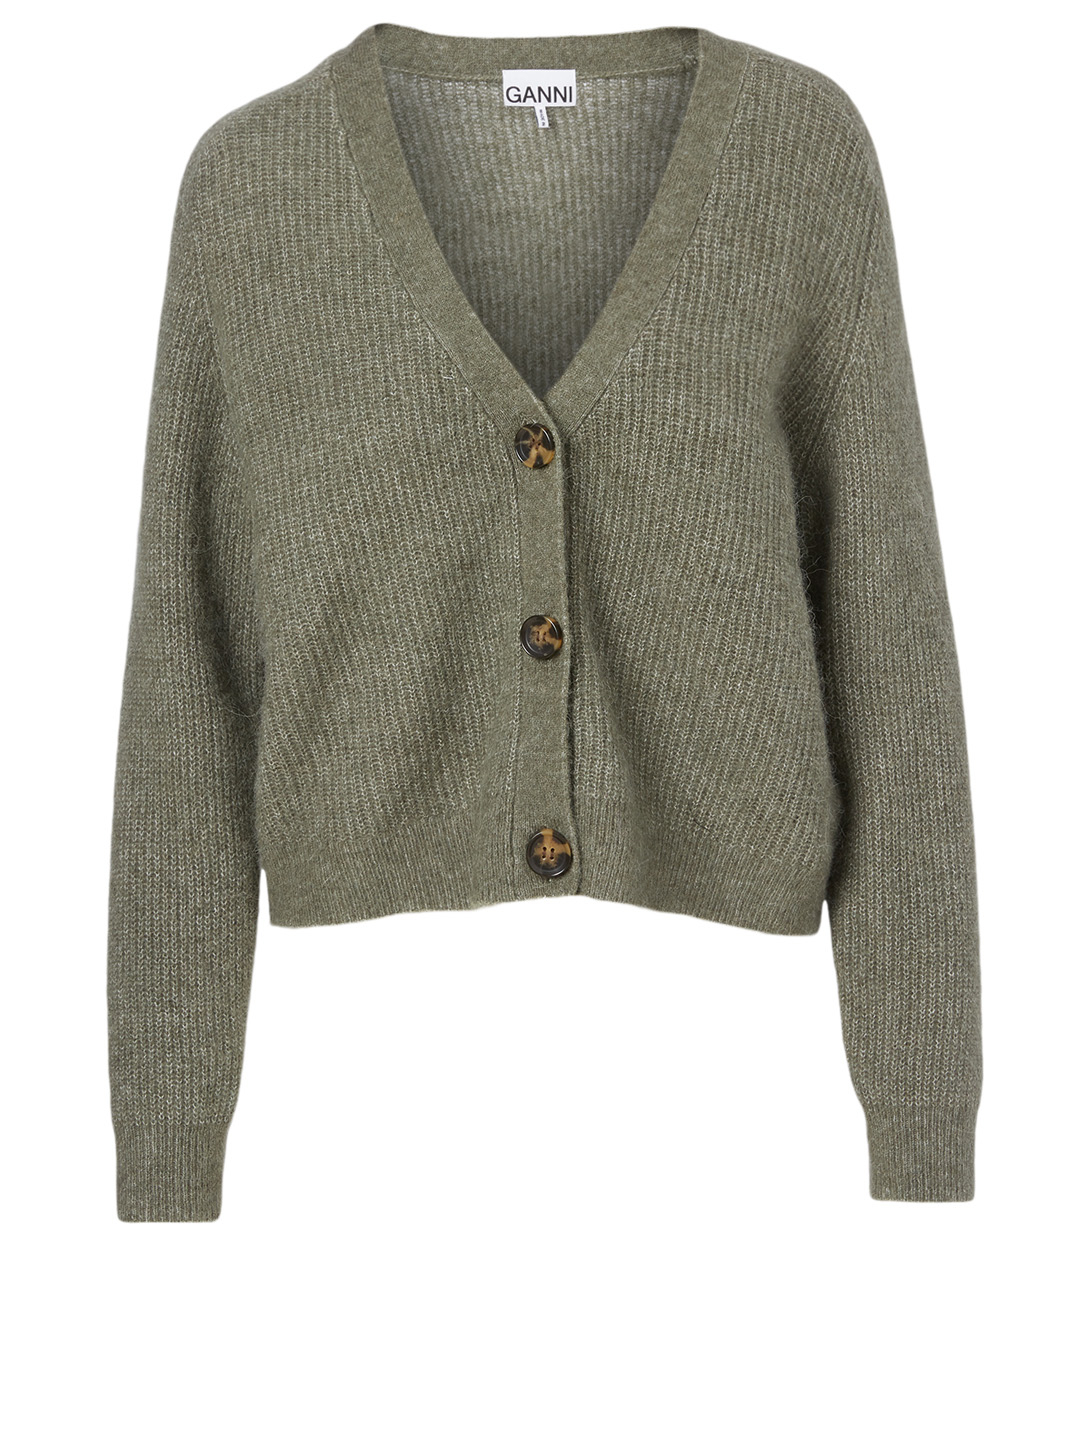 GANNI Alpaca And Wool Cardigan Women's Green